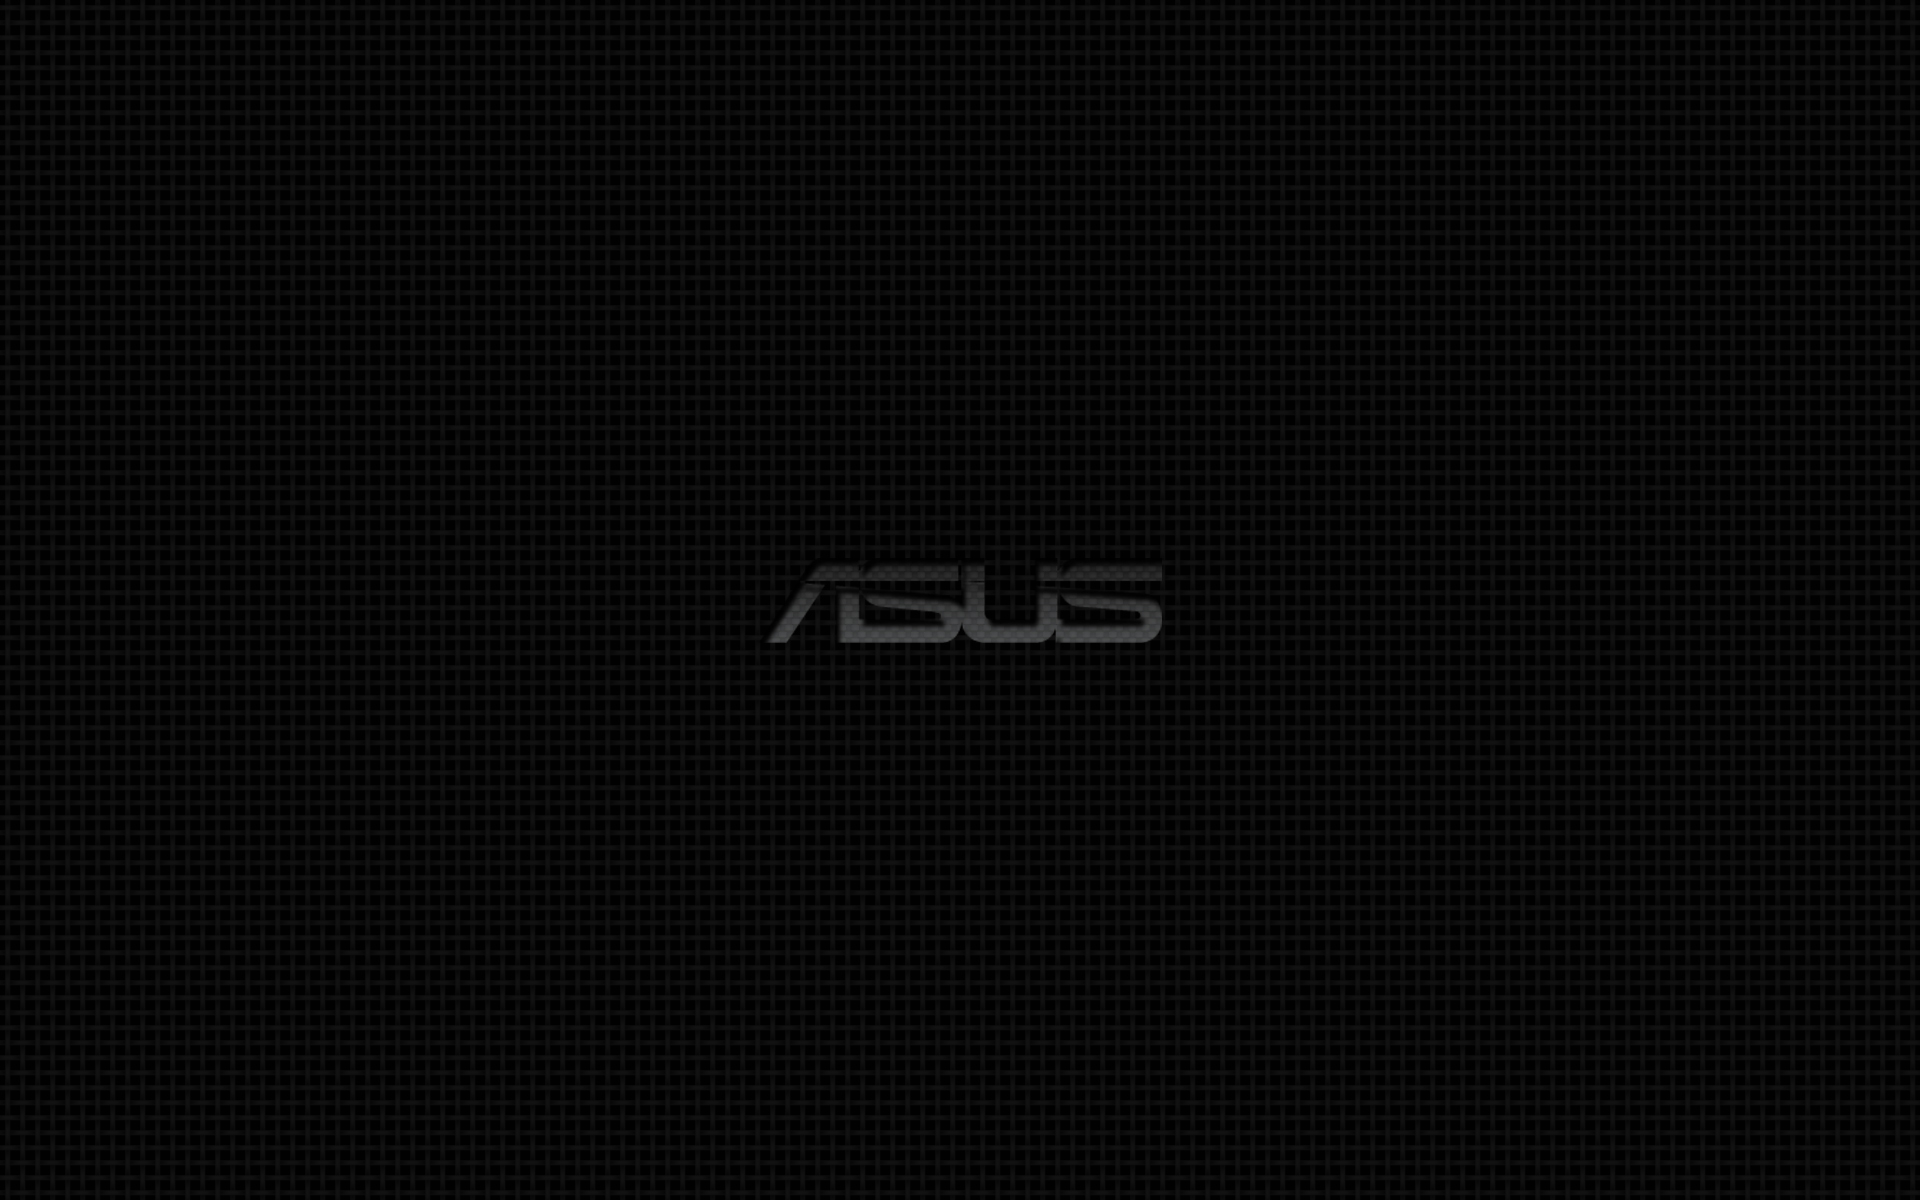 wallpopercomimages00173883abstract asus 00173883jpg 1920x1200